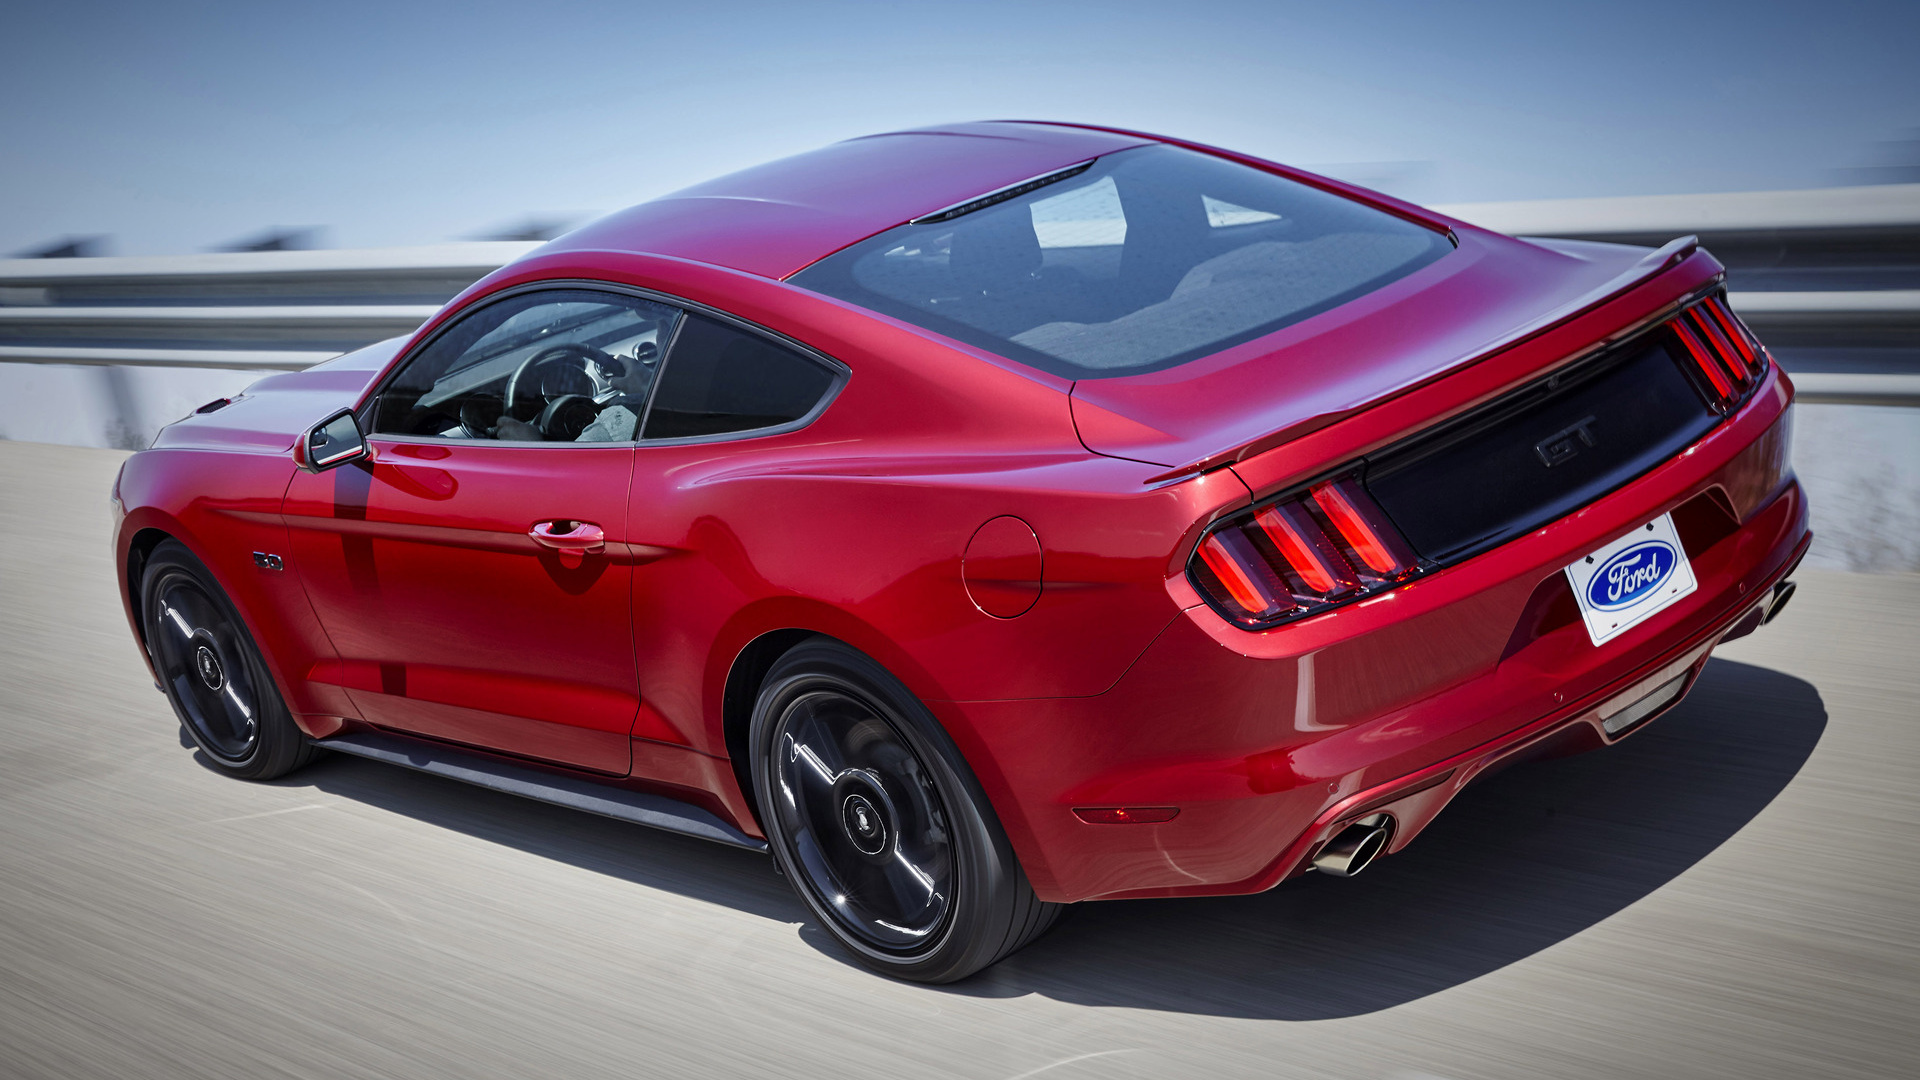 Ford Mustang GT Black Accent 2016 Wallpapers and HD Images 1920x1080